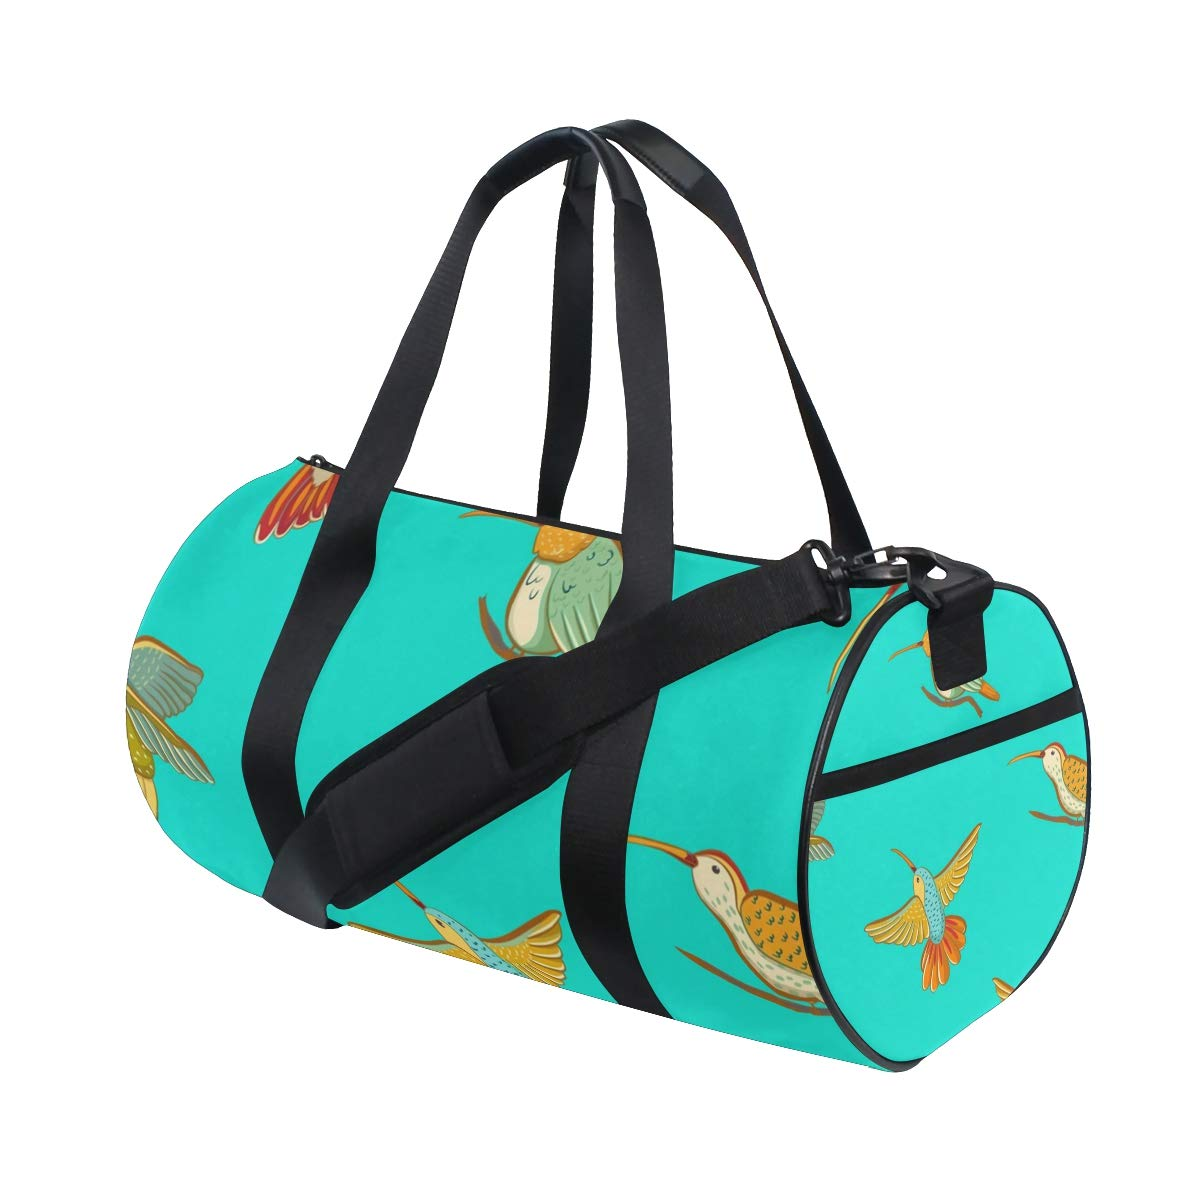 Travel Weekender Duffel Bag for Man and Woman Gym Bag with Hummingbird Lover Green Print